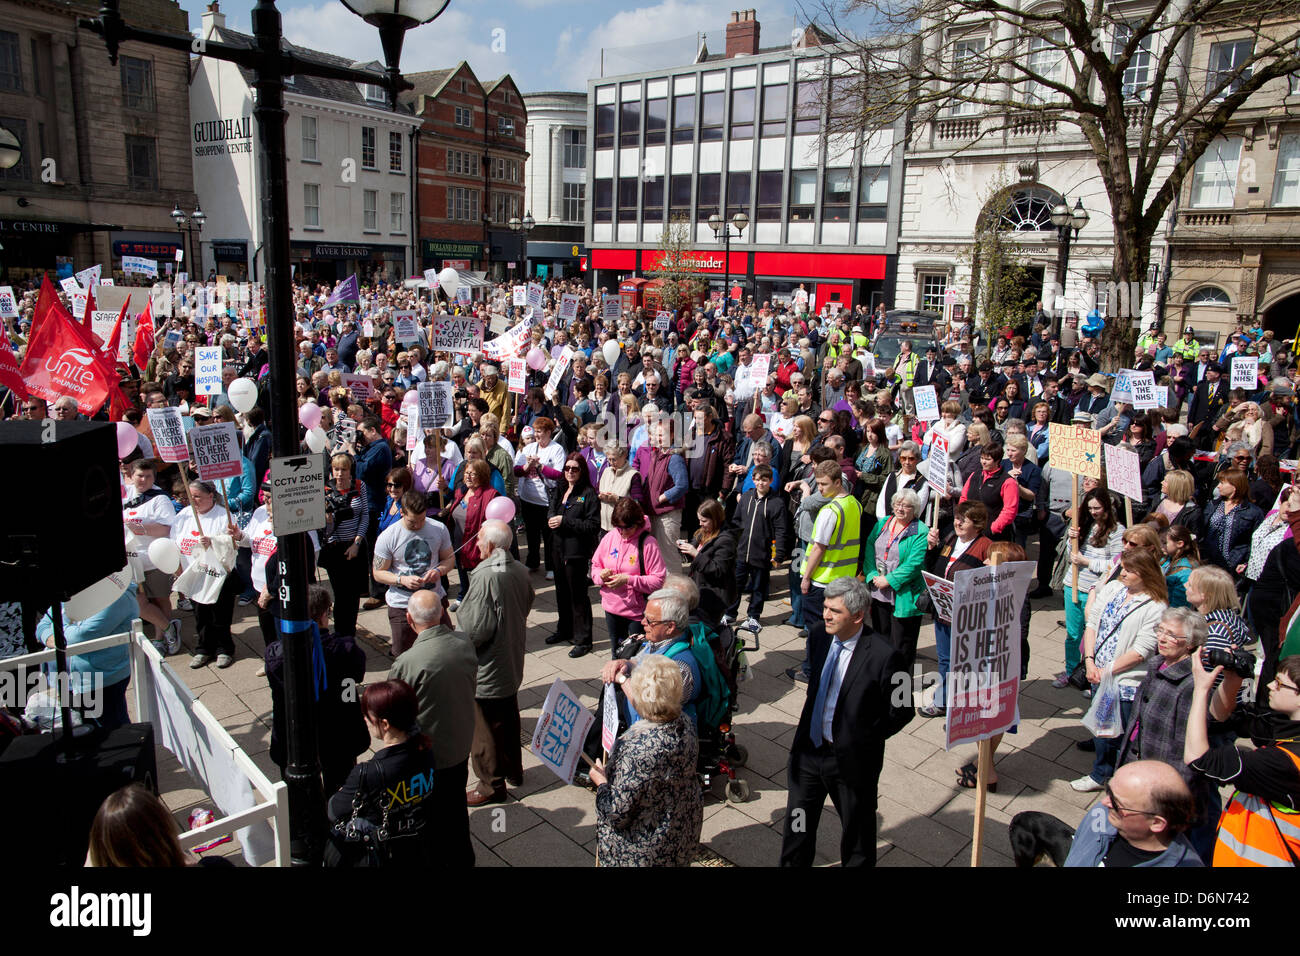 Protesters march through Stafford against cuts to NHS services at Stafford Hospital - Stock Image